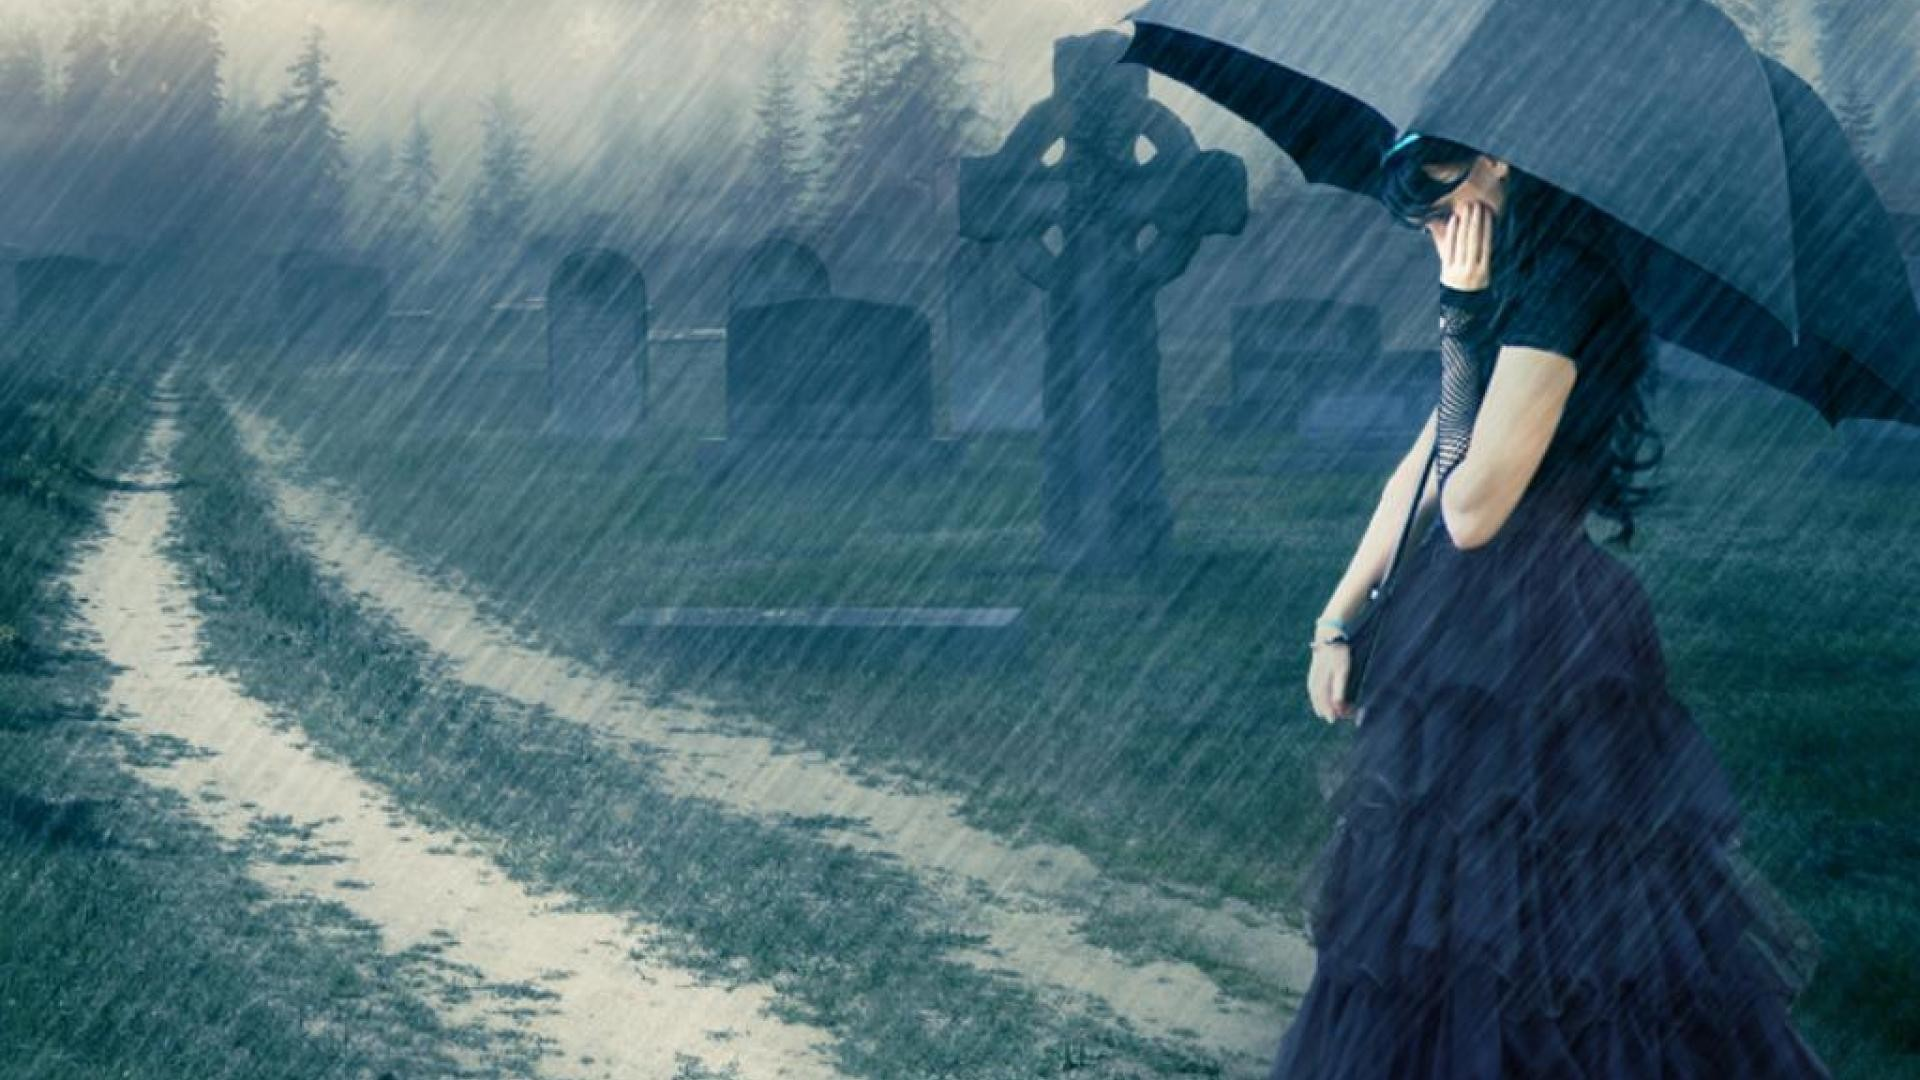 1920x1080 Sad Rain Wallpapers High Definition HD Quality Resolution  px  196.33 KB